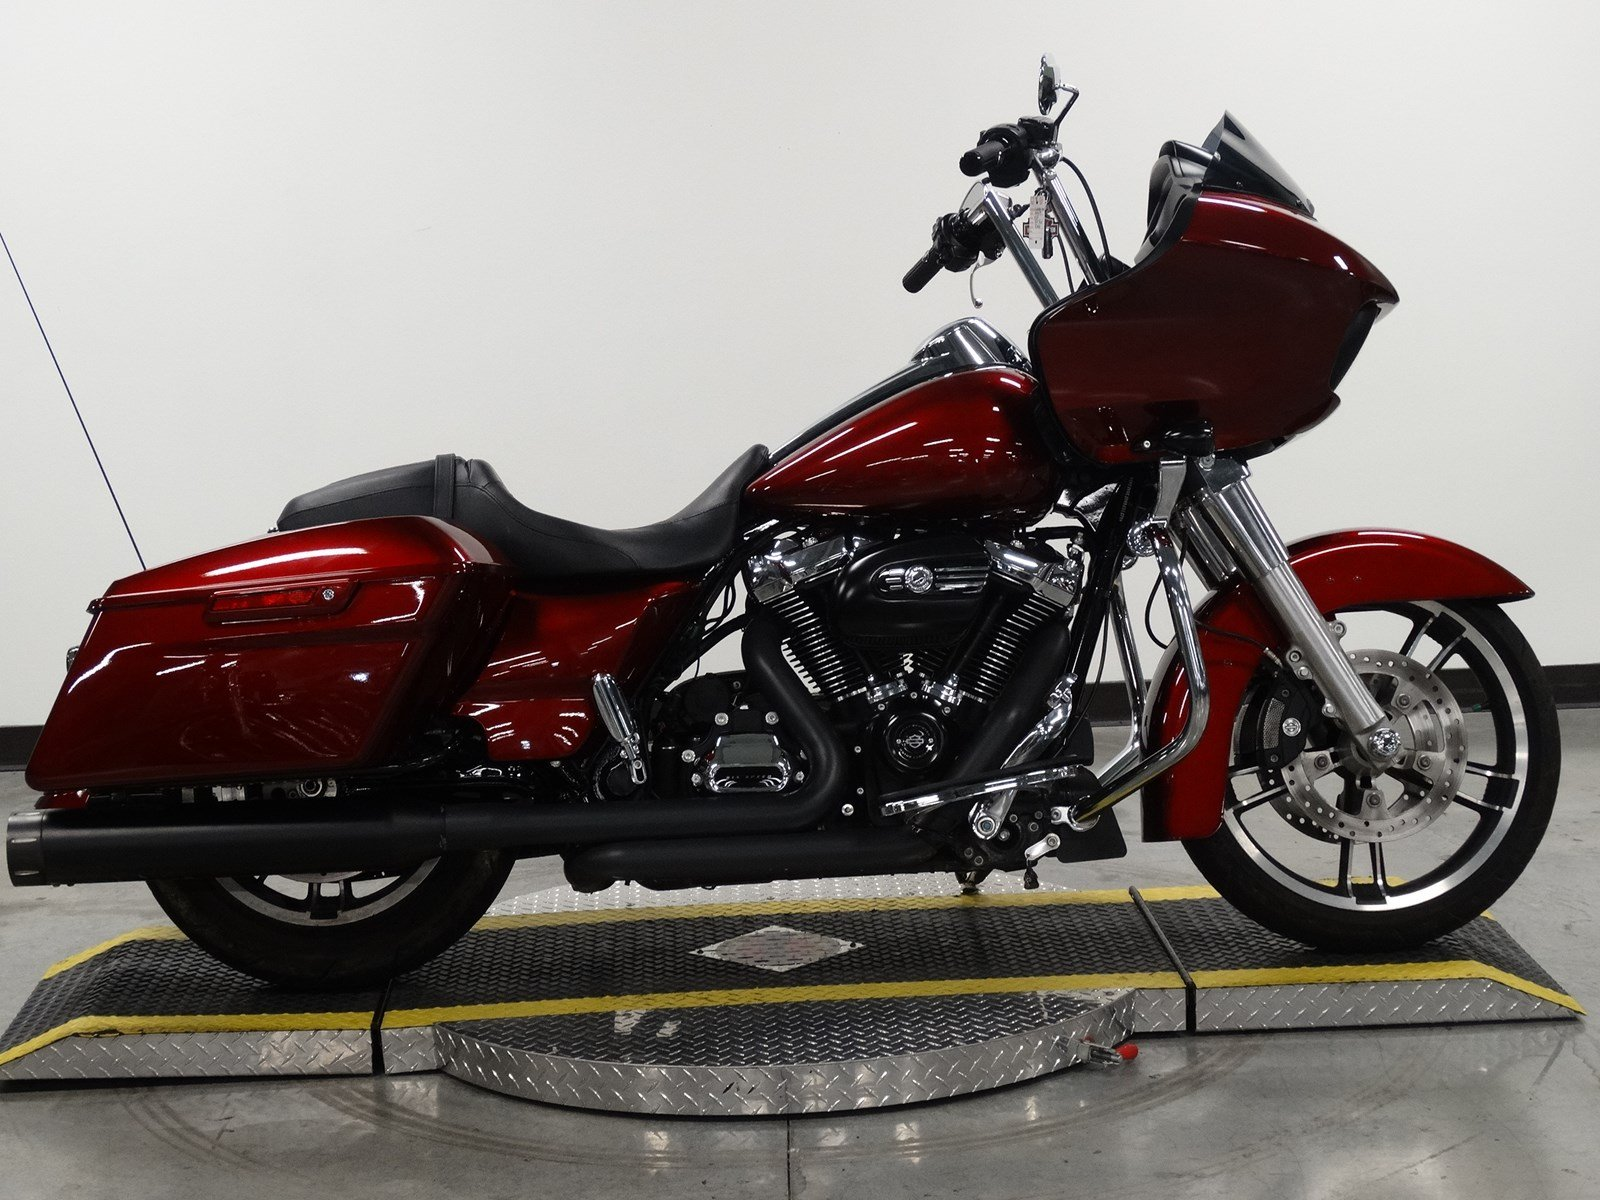 Pre-Owned 2017 Harley-Davidson Road Glide FLTRX Touring in Olathe